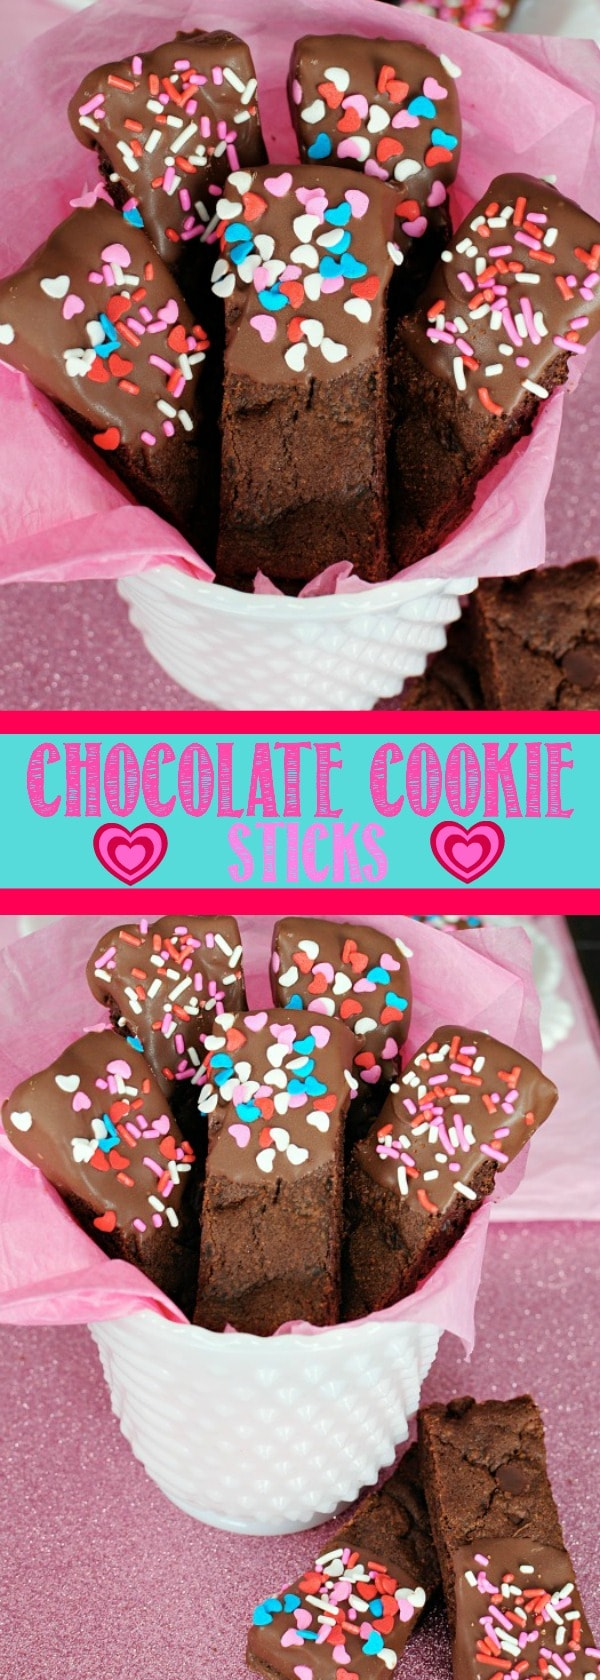 Valentine's Day Chocolate Dipped Cookie Sticks!